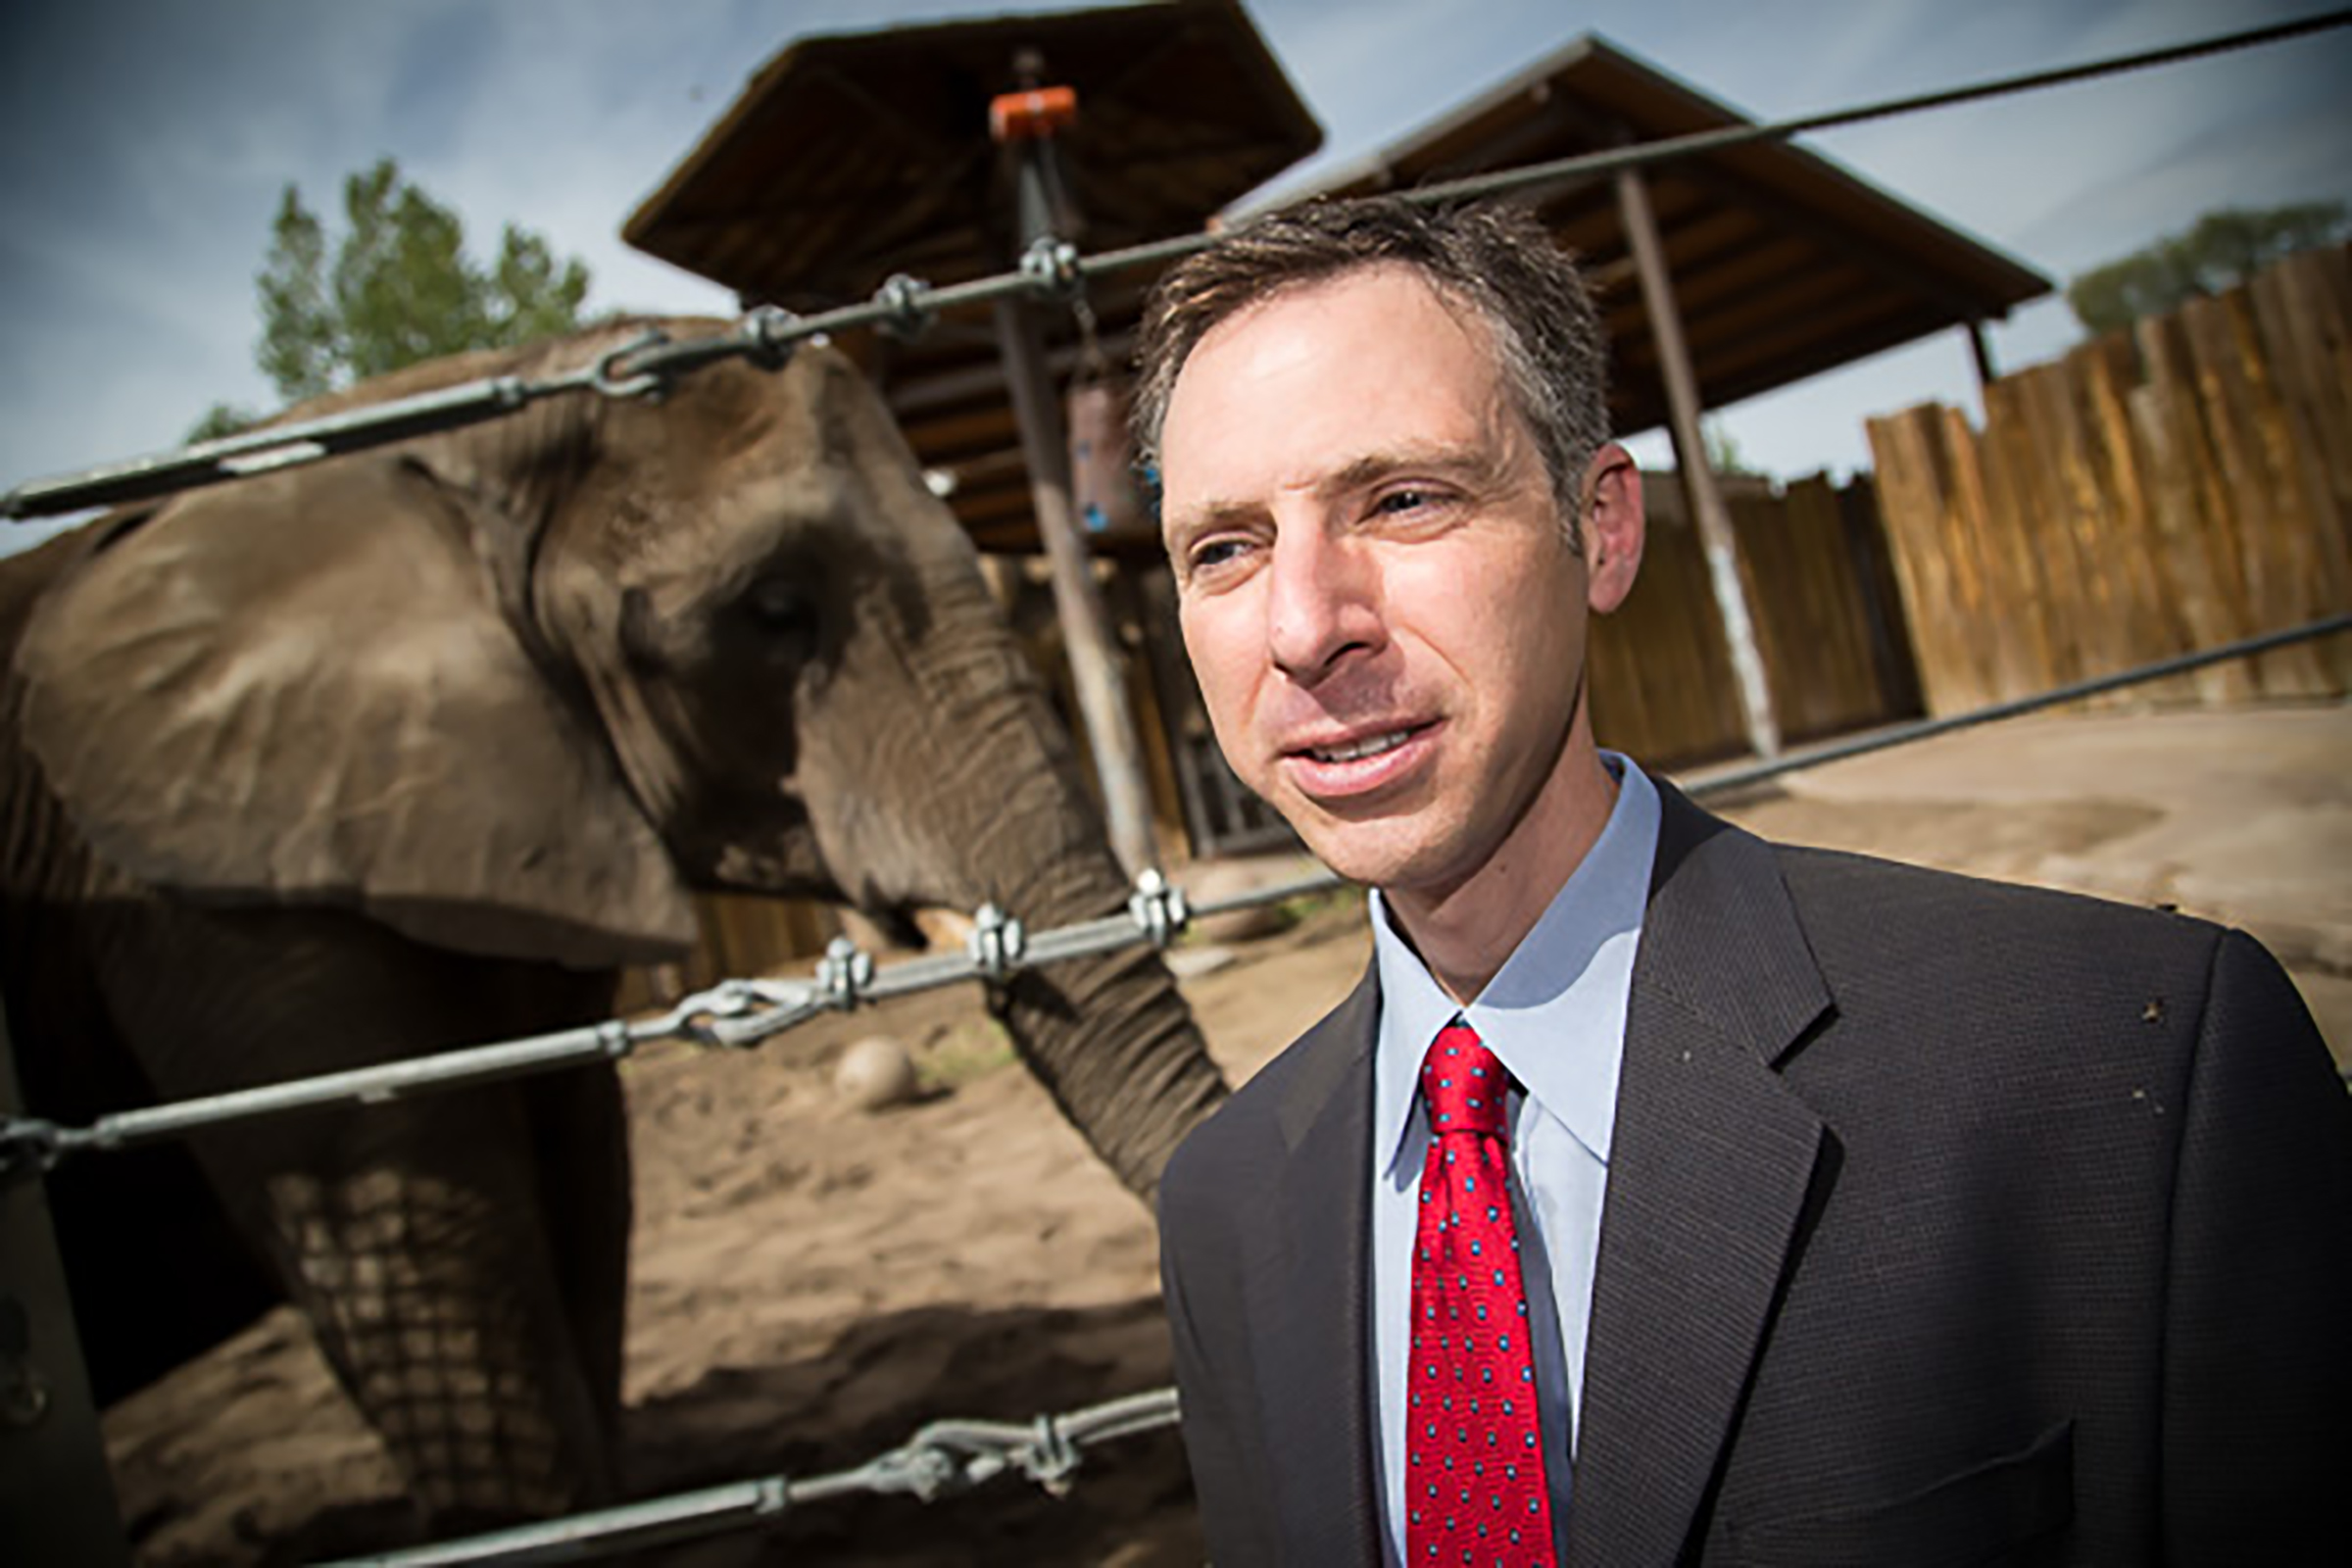 Joshua Schiffman, M.D., pediatric oncologist at the Huntsman Cancer Institute at the University of Utah, has led a study that could explain why elephants rarely get cancer. Elephants have extra copies of a gene that encodes a well-defined tumor suppressor, p53. Elephants may also have a more robust mechanism for killing damaged cells that are at risk for becoming cancerous. The findings could lead to new strategies for treating cancer in humans.